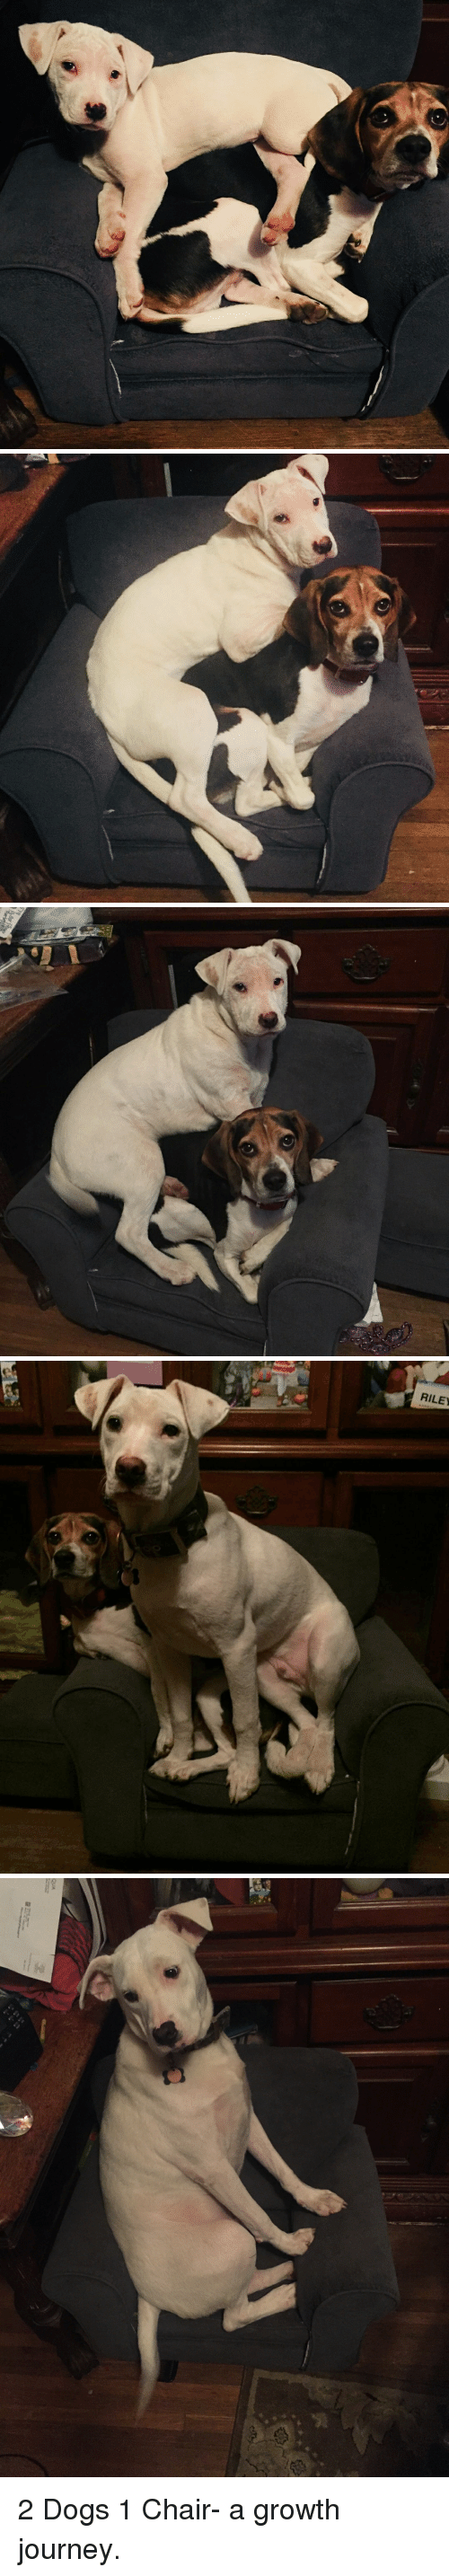 Dogs, Journey, and Chair: RILEY 2 Dogs 1 Chair- a growth journey.